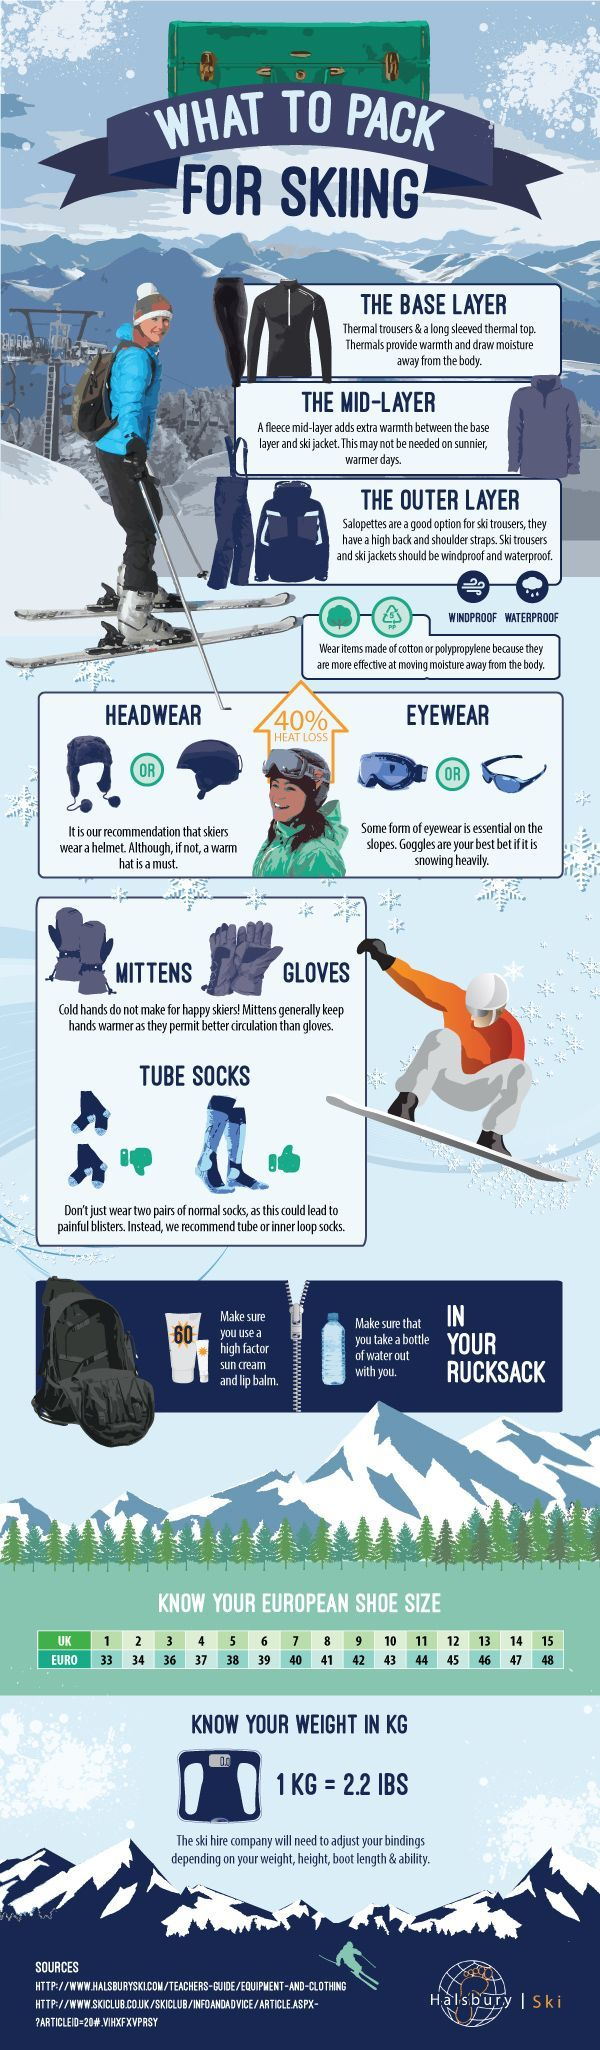 What to Pack for Skiing Infographic #infographic #design #ski www.halsburyski.com/teachers-guide/equipment-and-clothing #skiingequipment